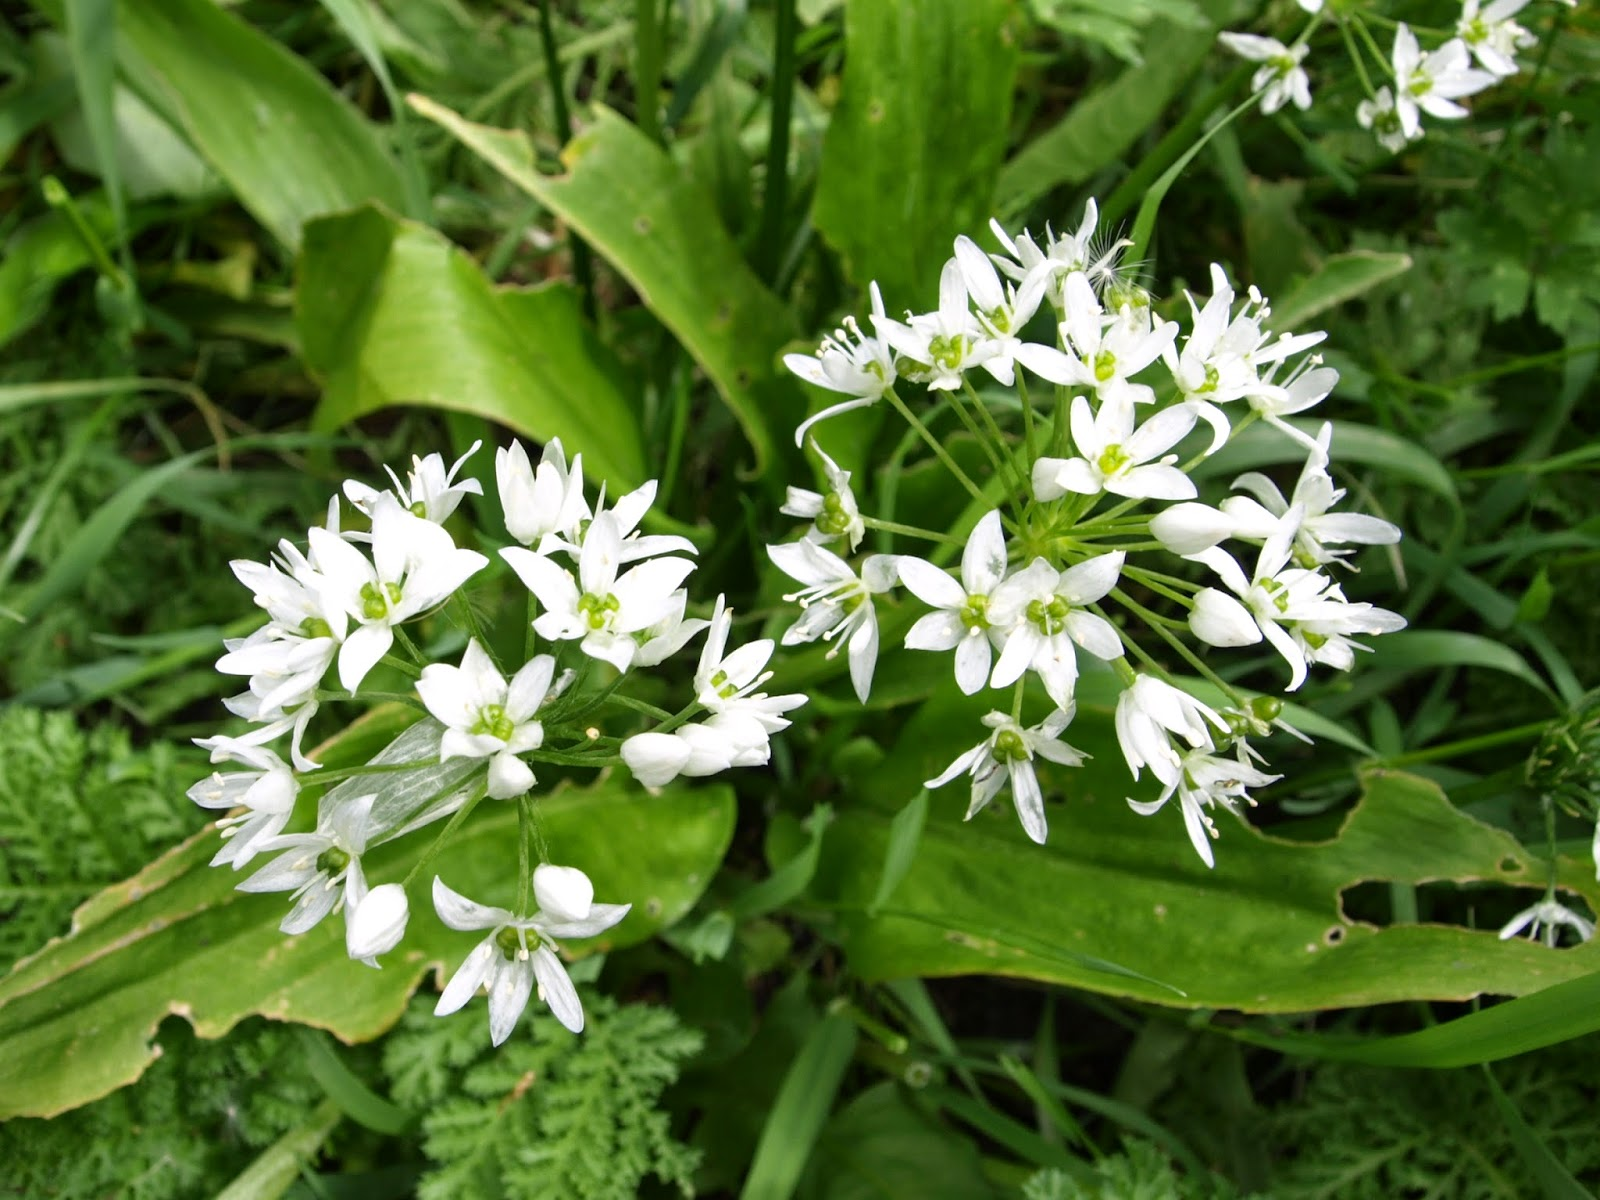 An image of the delicate white star shaped flowers of the wild garlic plant.